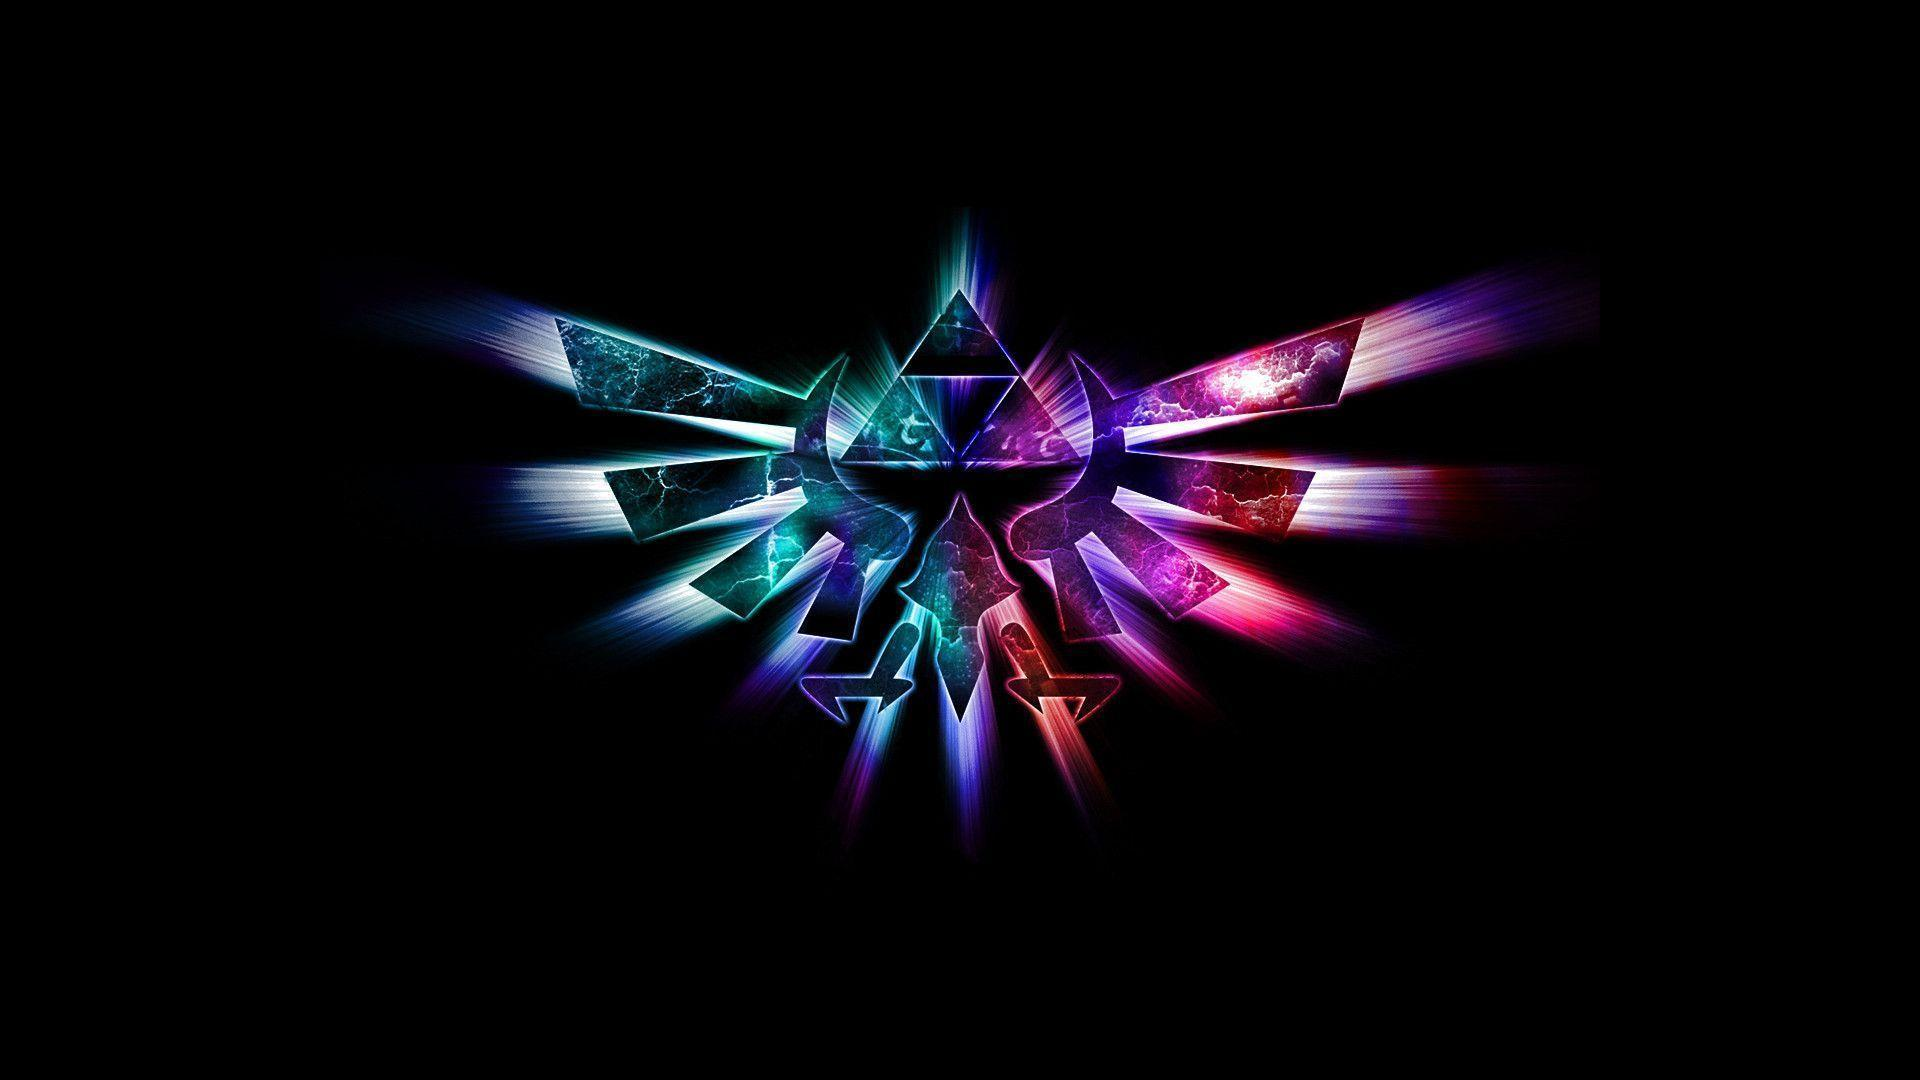 hd zelda wallpapers - photo #13